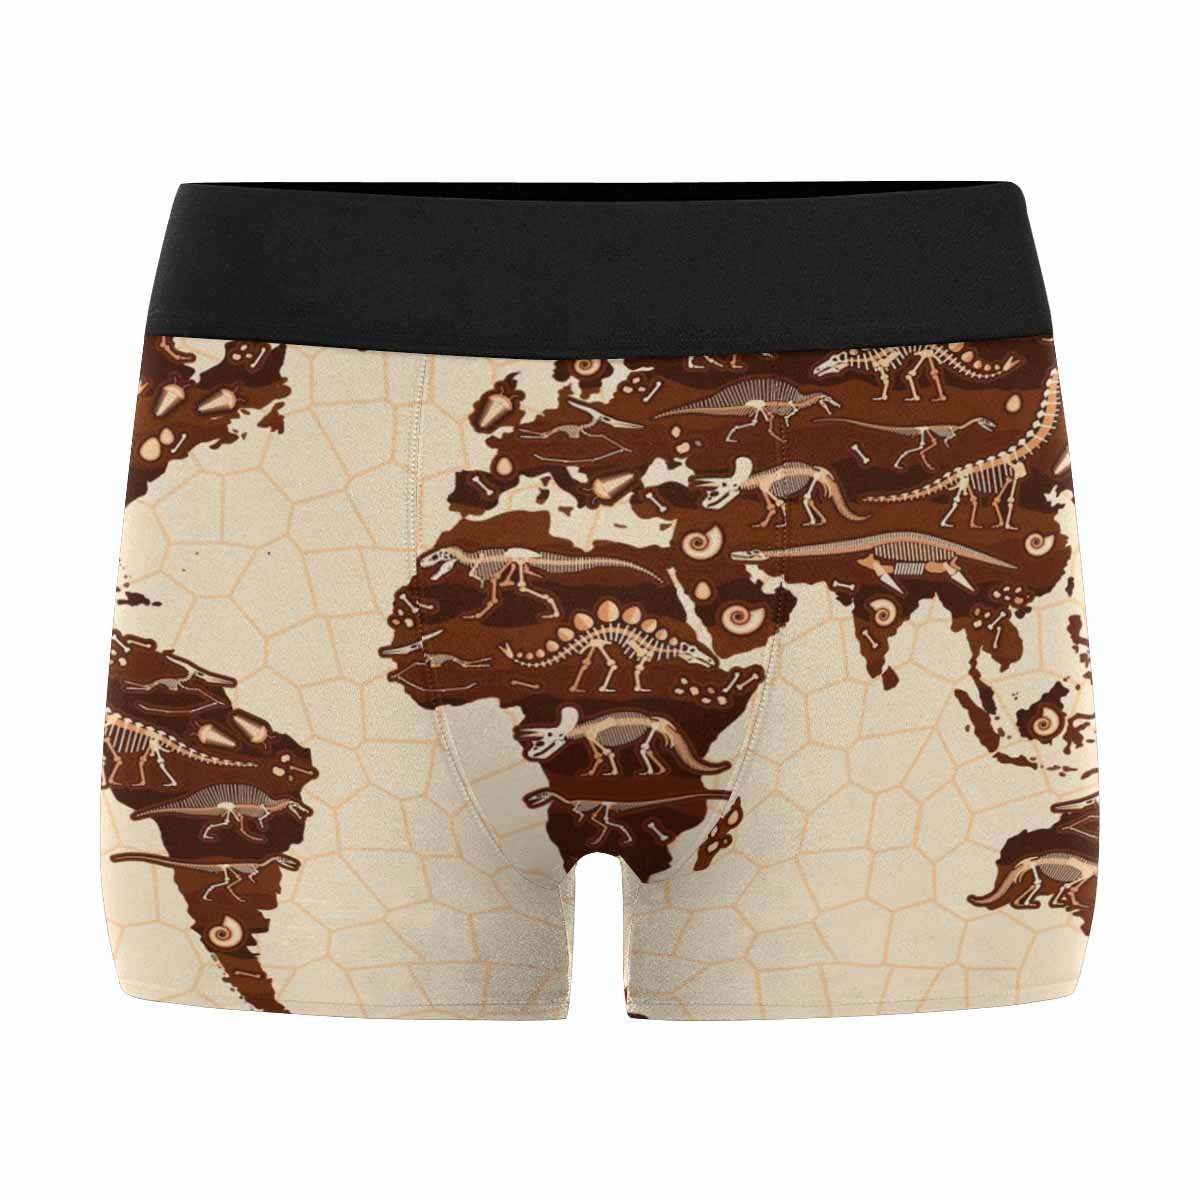 XS-3XL INTERESTPRINT Mens Boxer Briefs Underwear Cartoon World Map with Dinosaurs for Kids